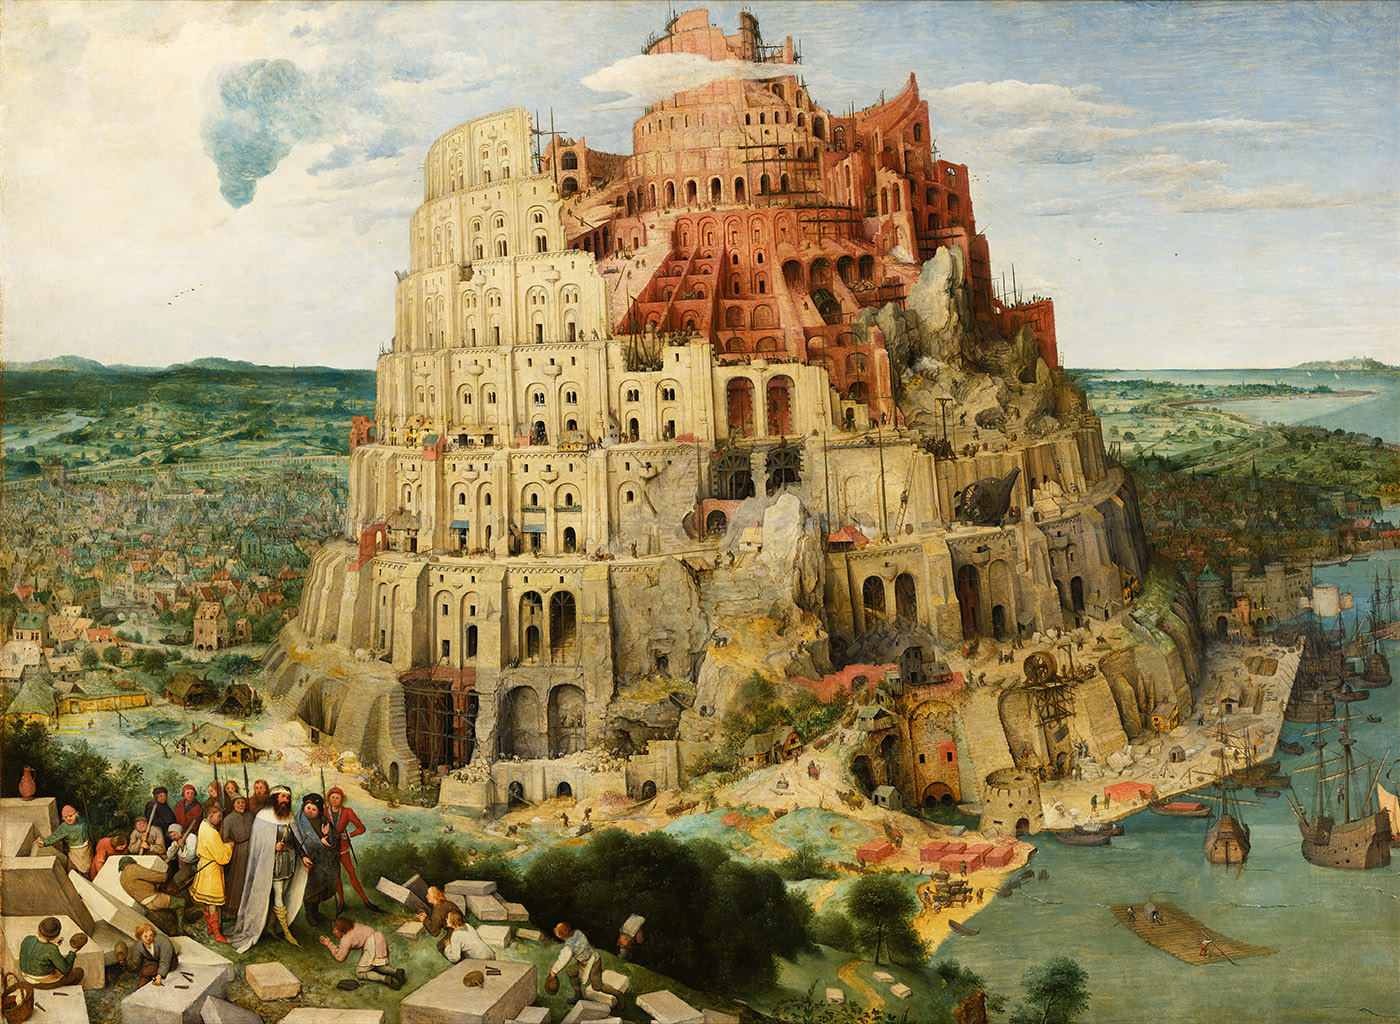 Pieter Brueghel the Elder, The great Tower of Babel